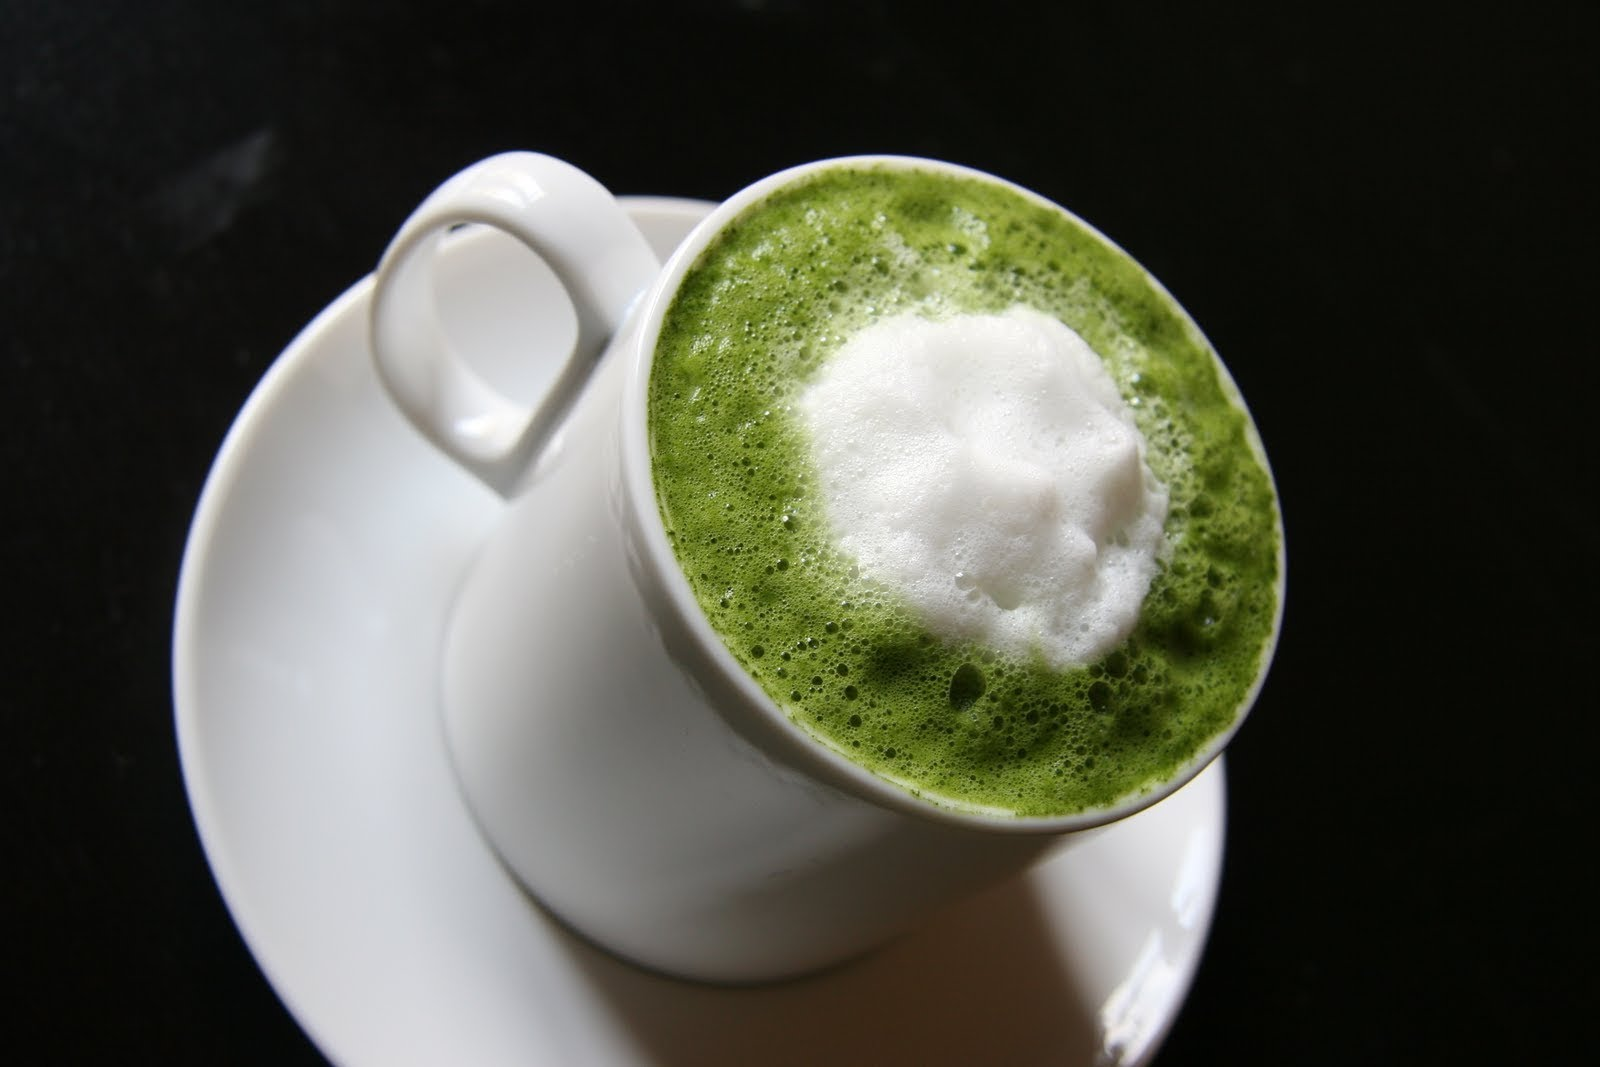 The Ultimate Guide To Making Green Tea Lattes